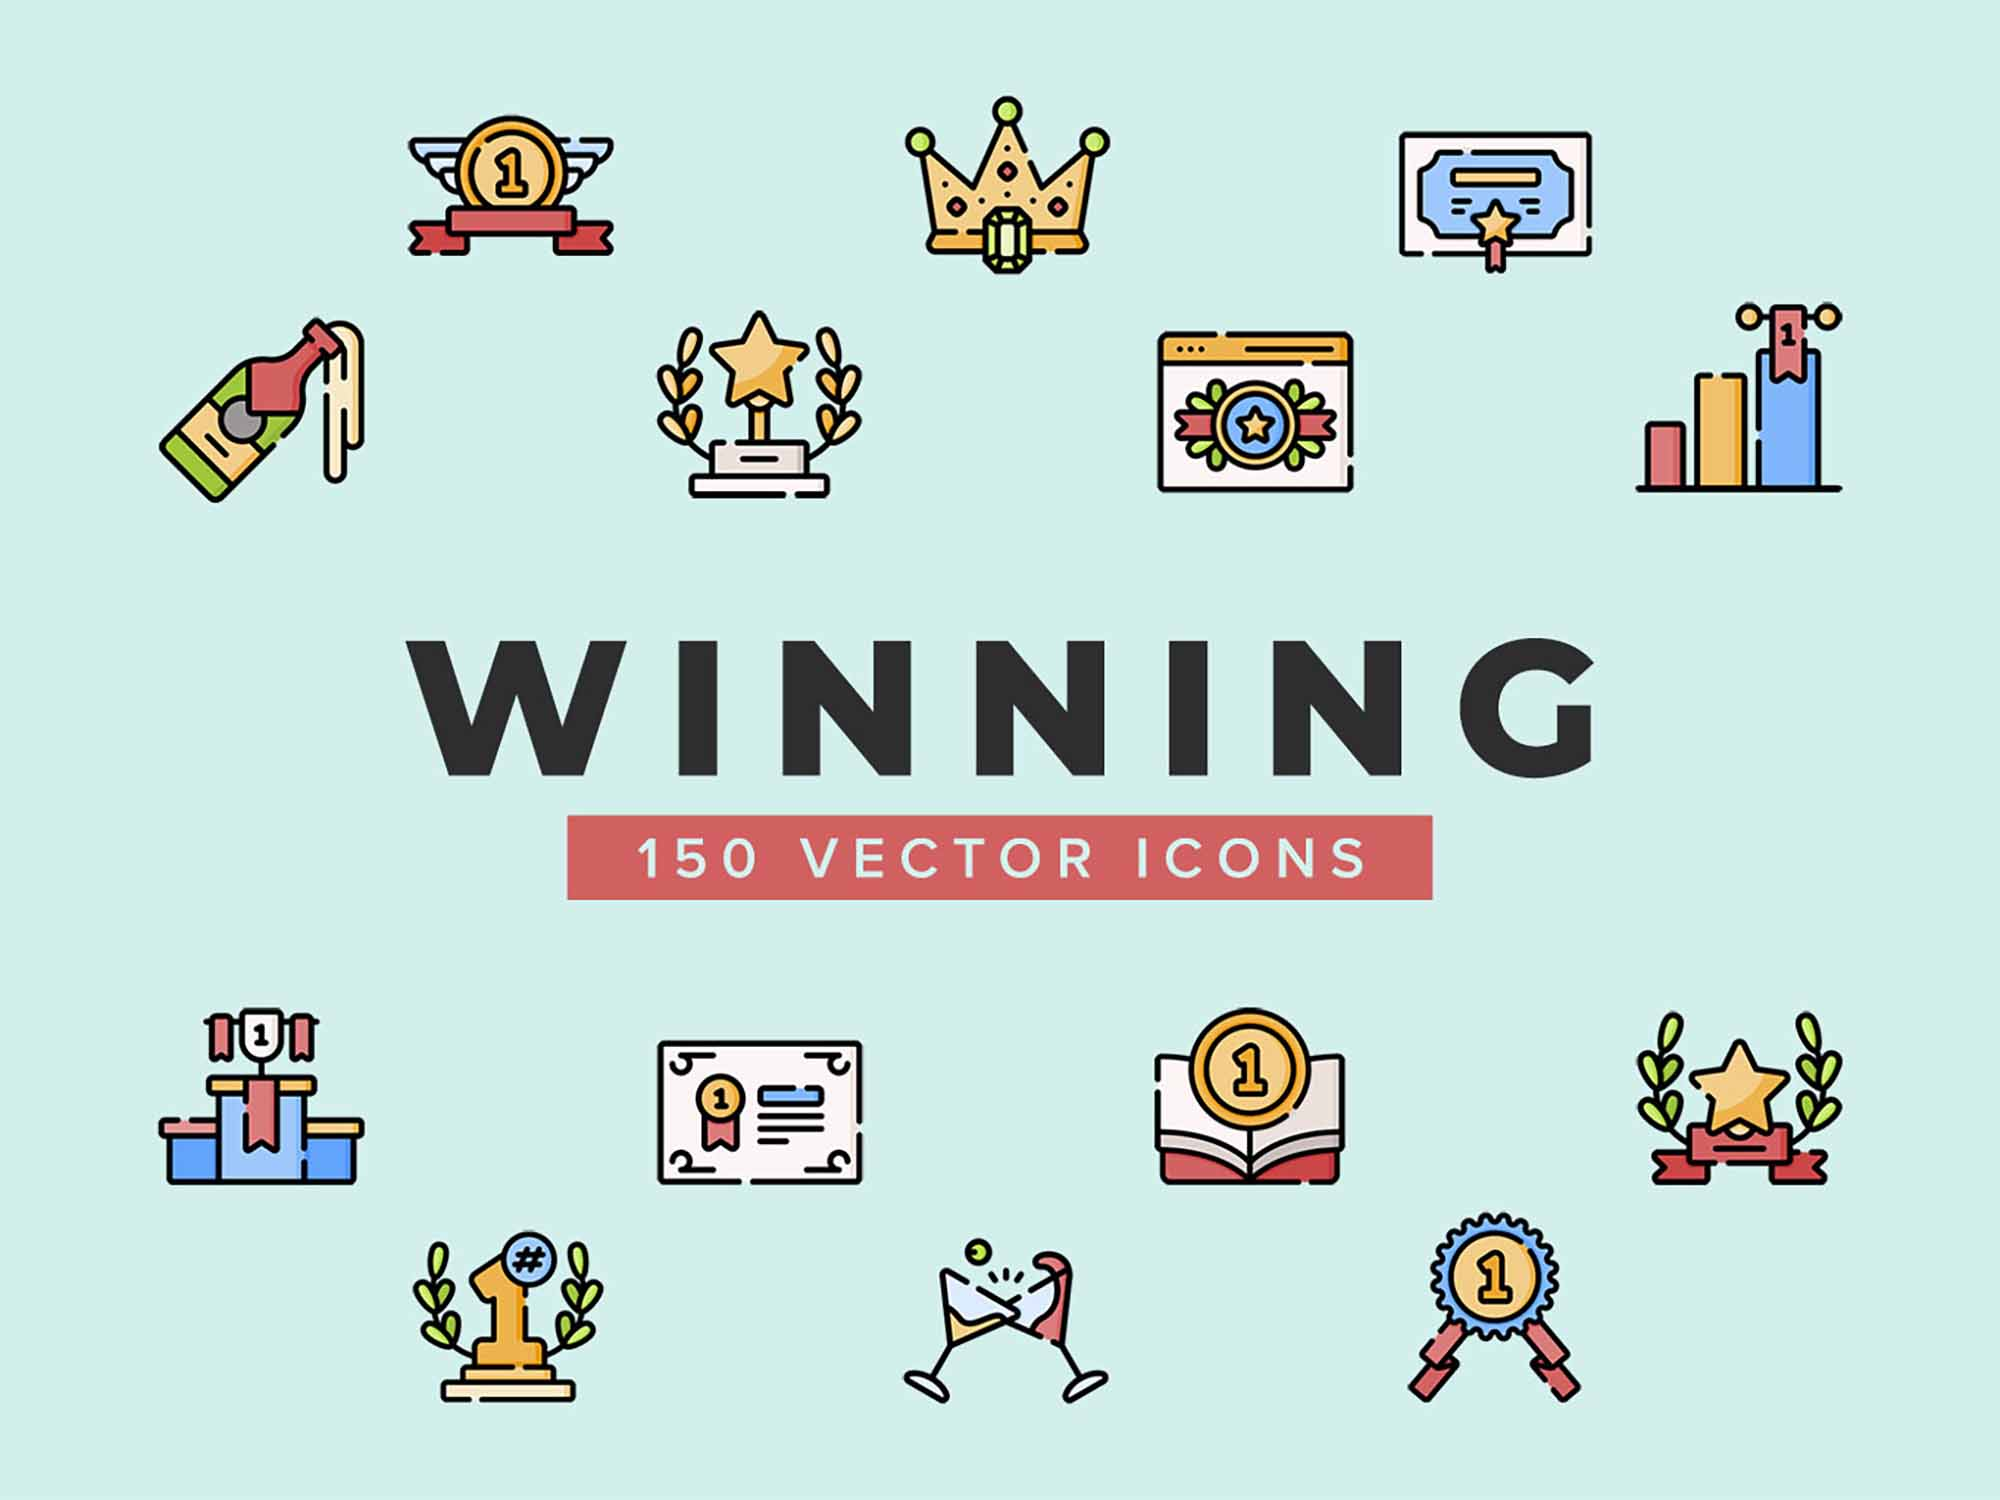 Wining Vector Icons